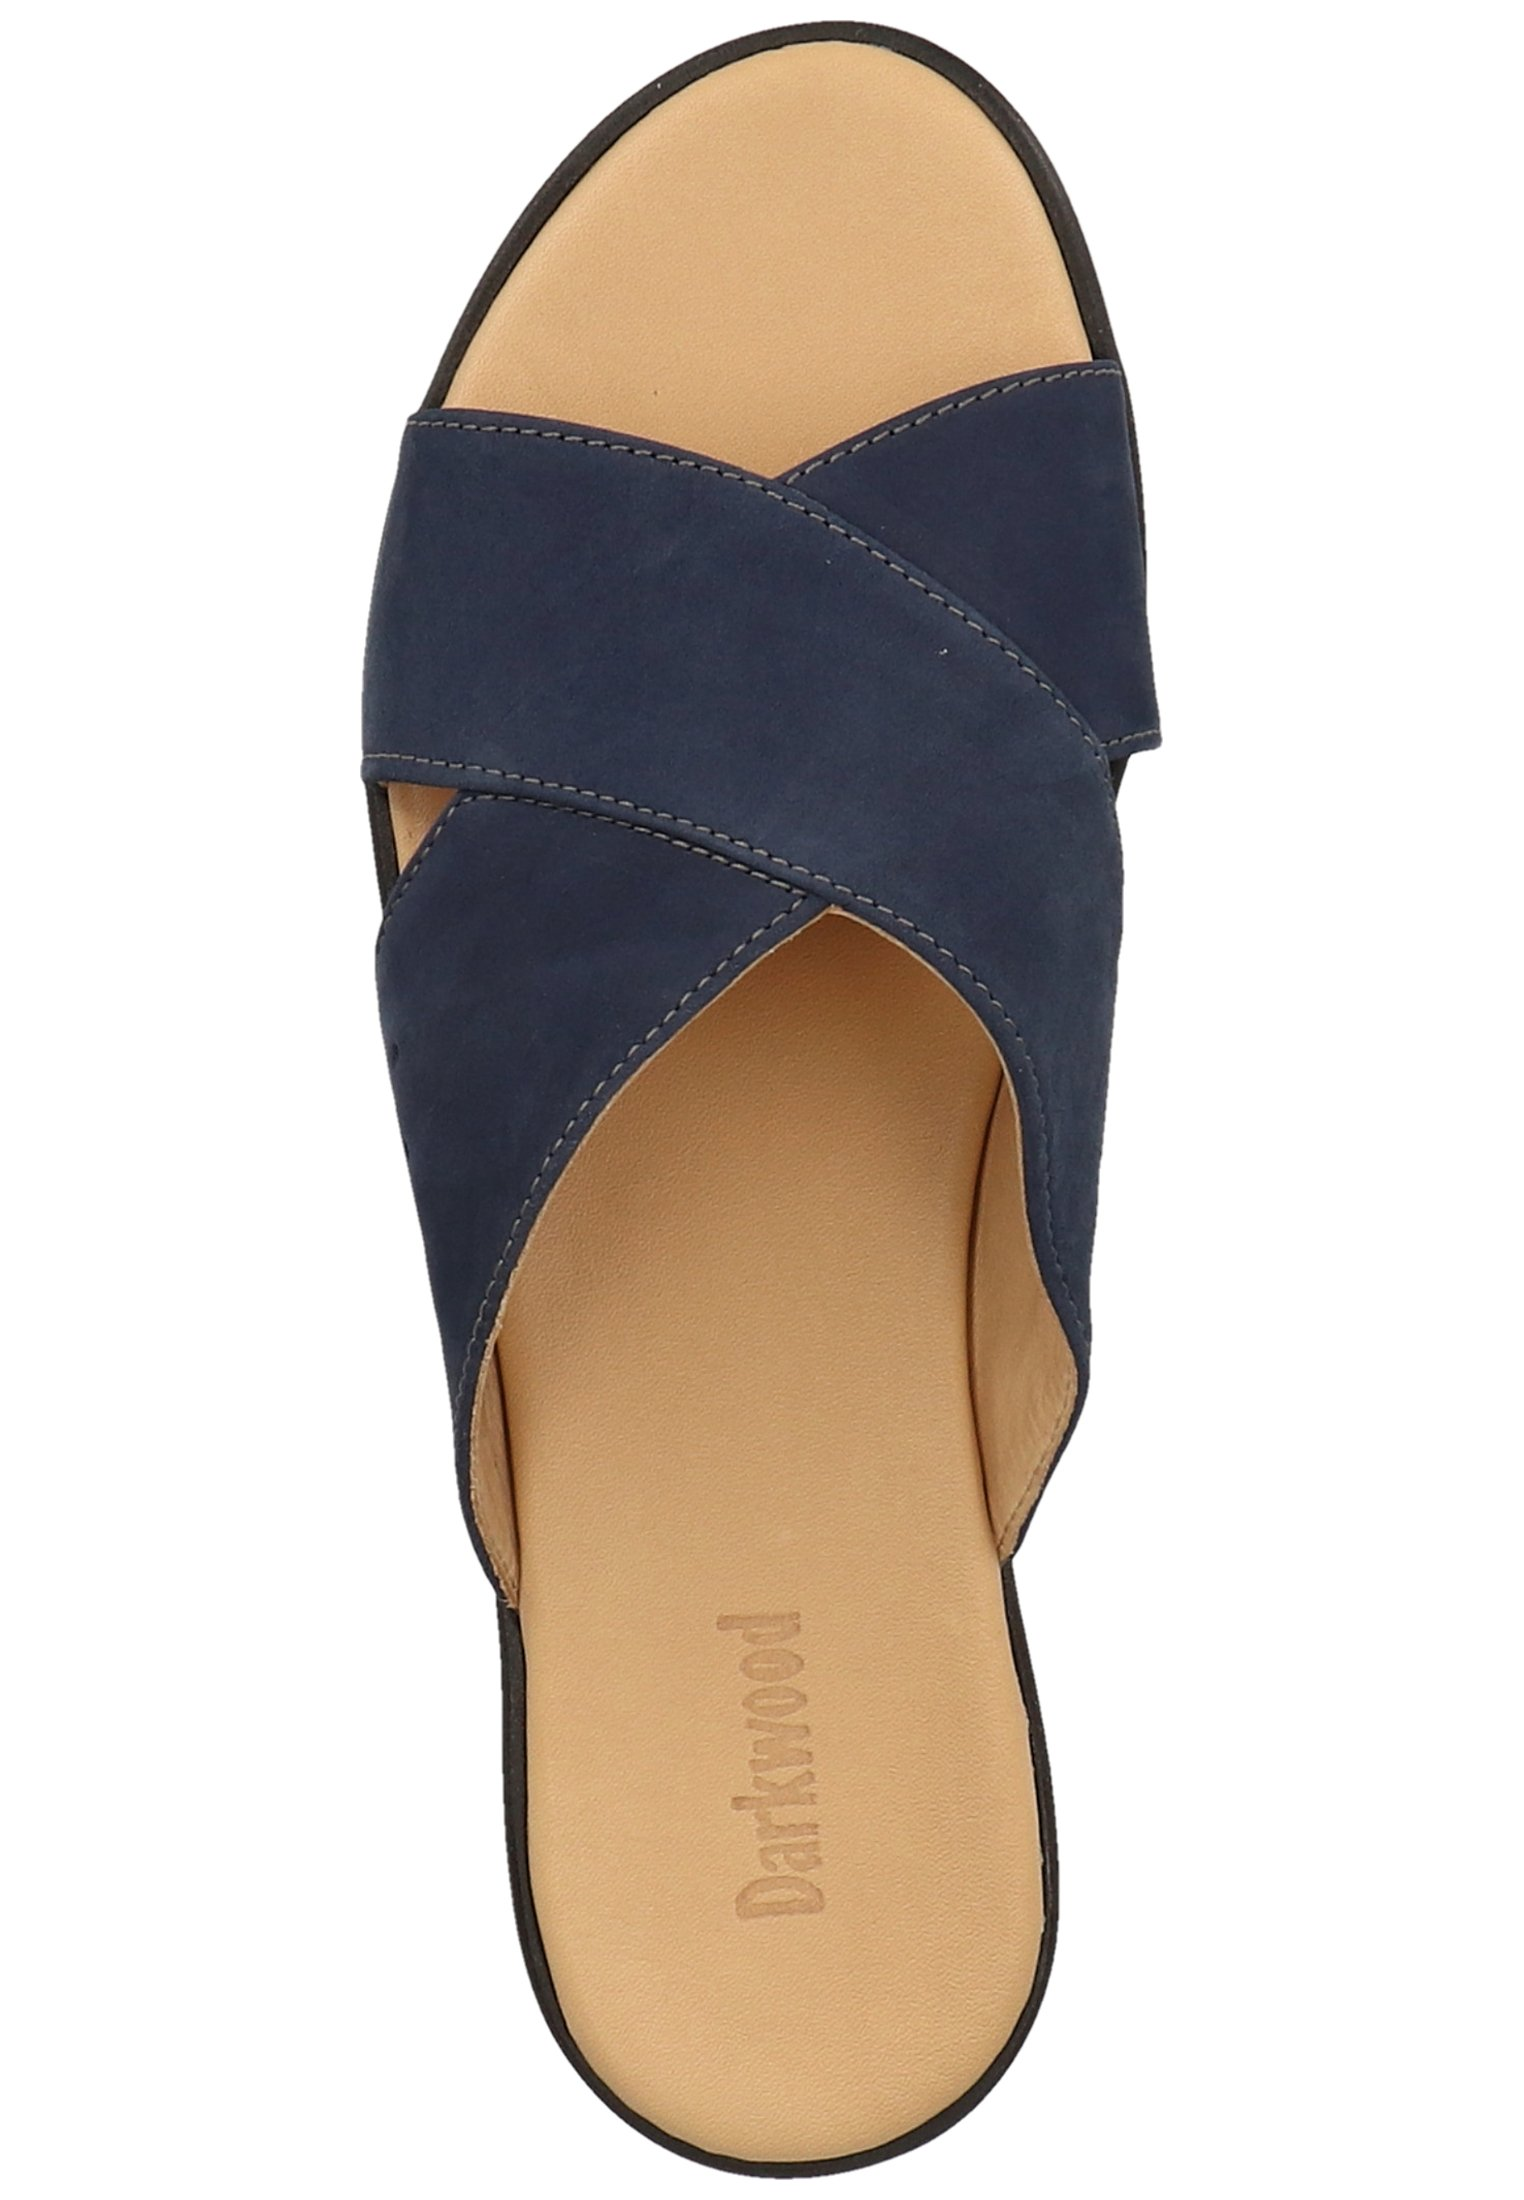 Darkwood Chaussons - Navy